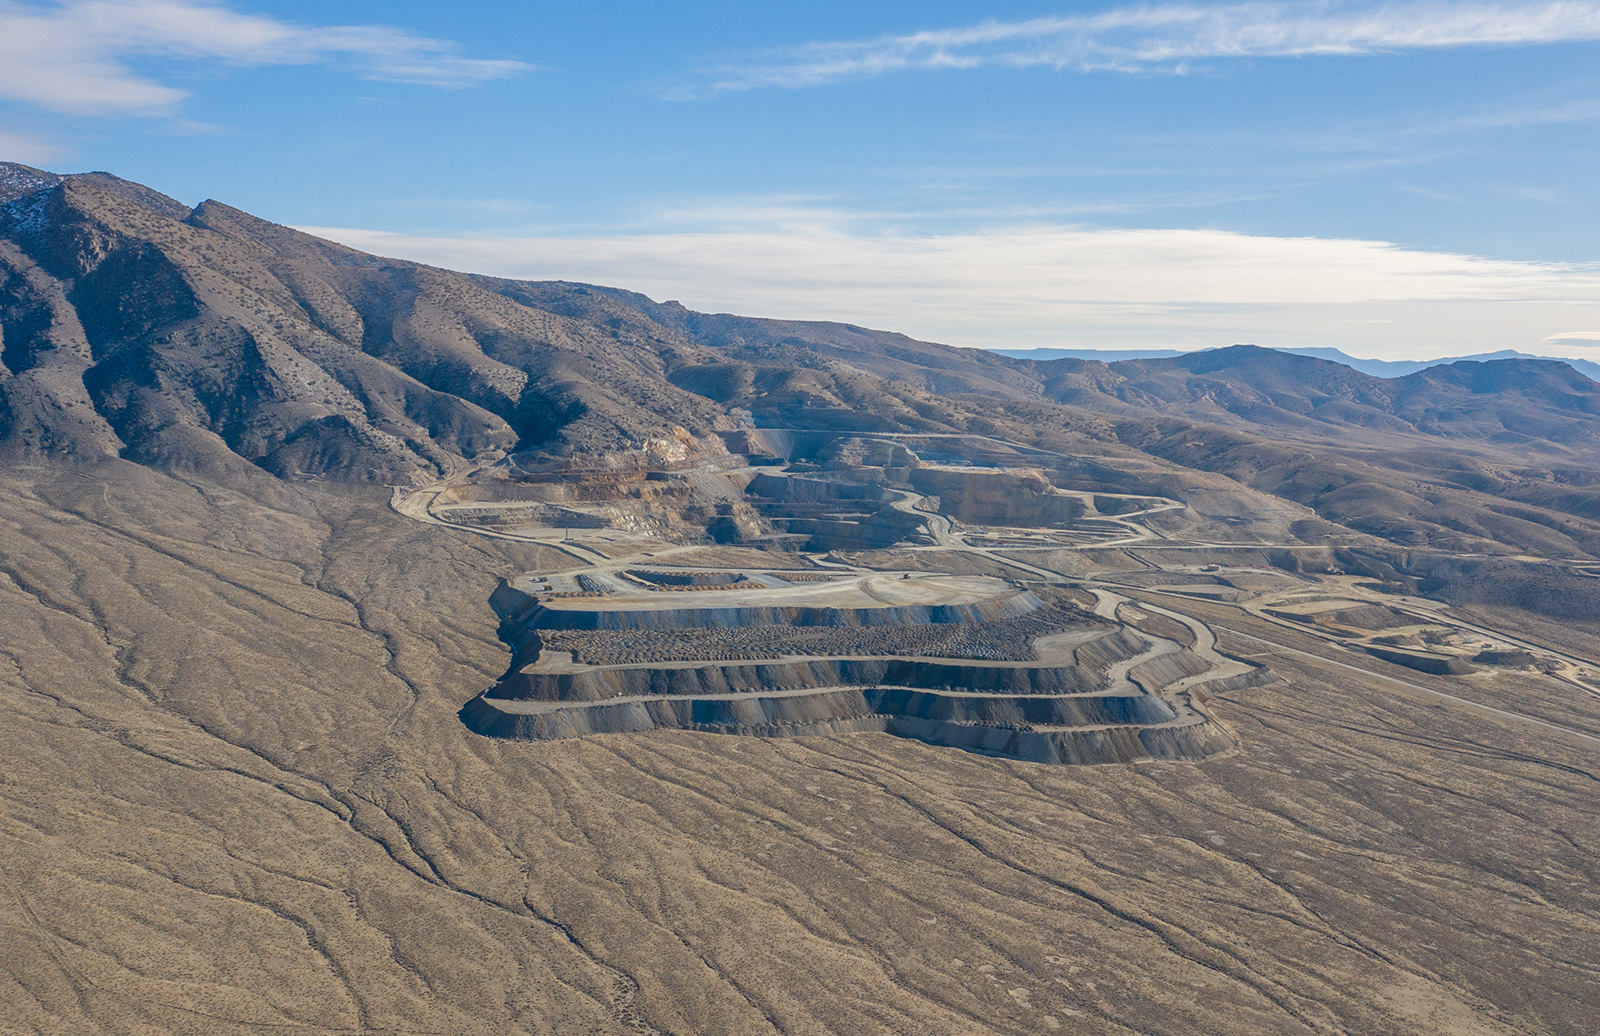 Gold hunters with deep pockets, take note: a Nevada gold mine with a 150-year history has gone on sale with a price tag of $40m.